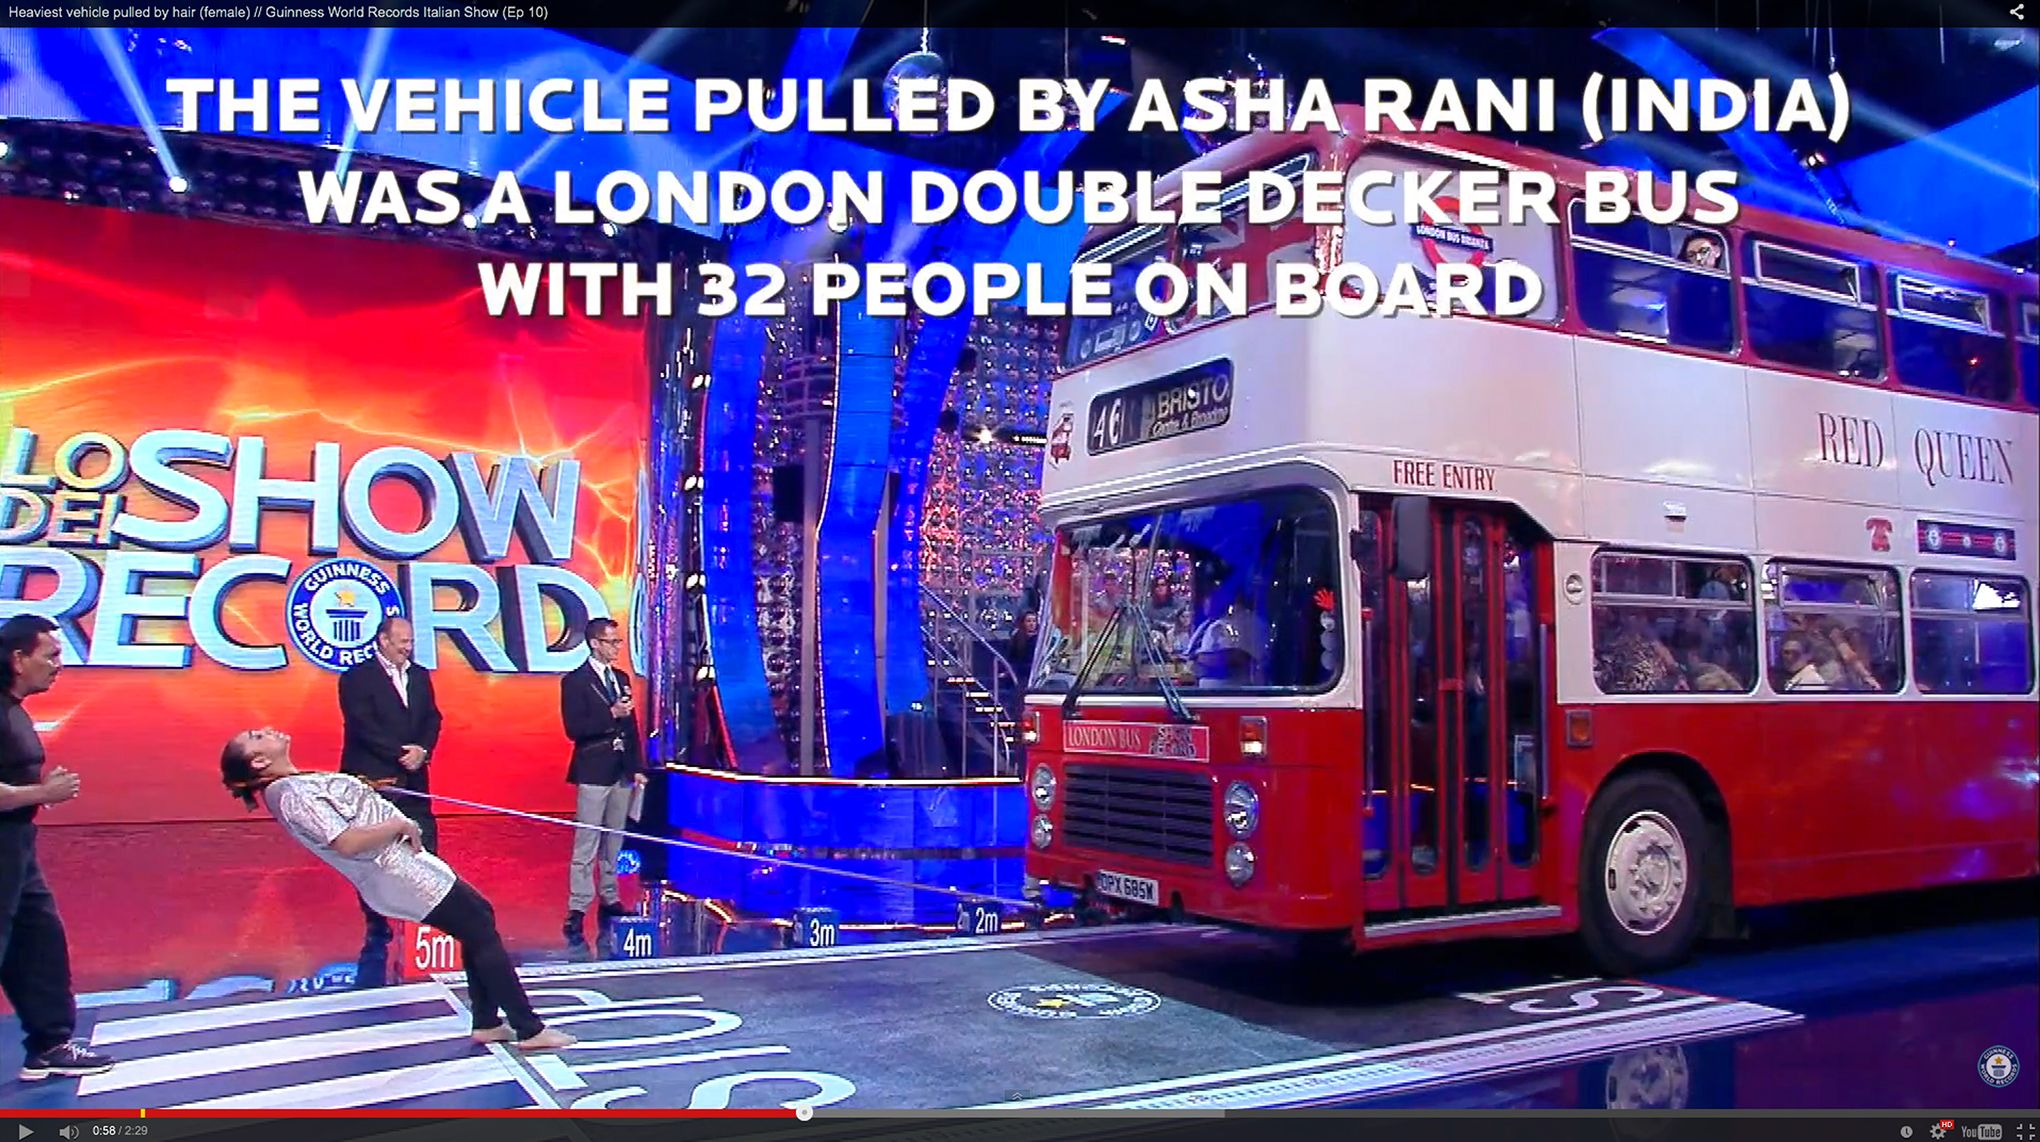 Source:  http://image.trucktrend.com/f/101432100+re0+ar0+st0/008-auto-news-8-lug-work-truck-guinness-book-of-world-records-the-iron-queen-india-heaviest-vehicle-pulled-by-hair-double-decker-bus.jpg